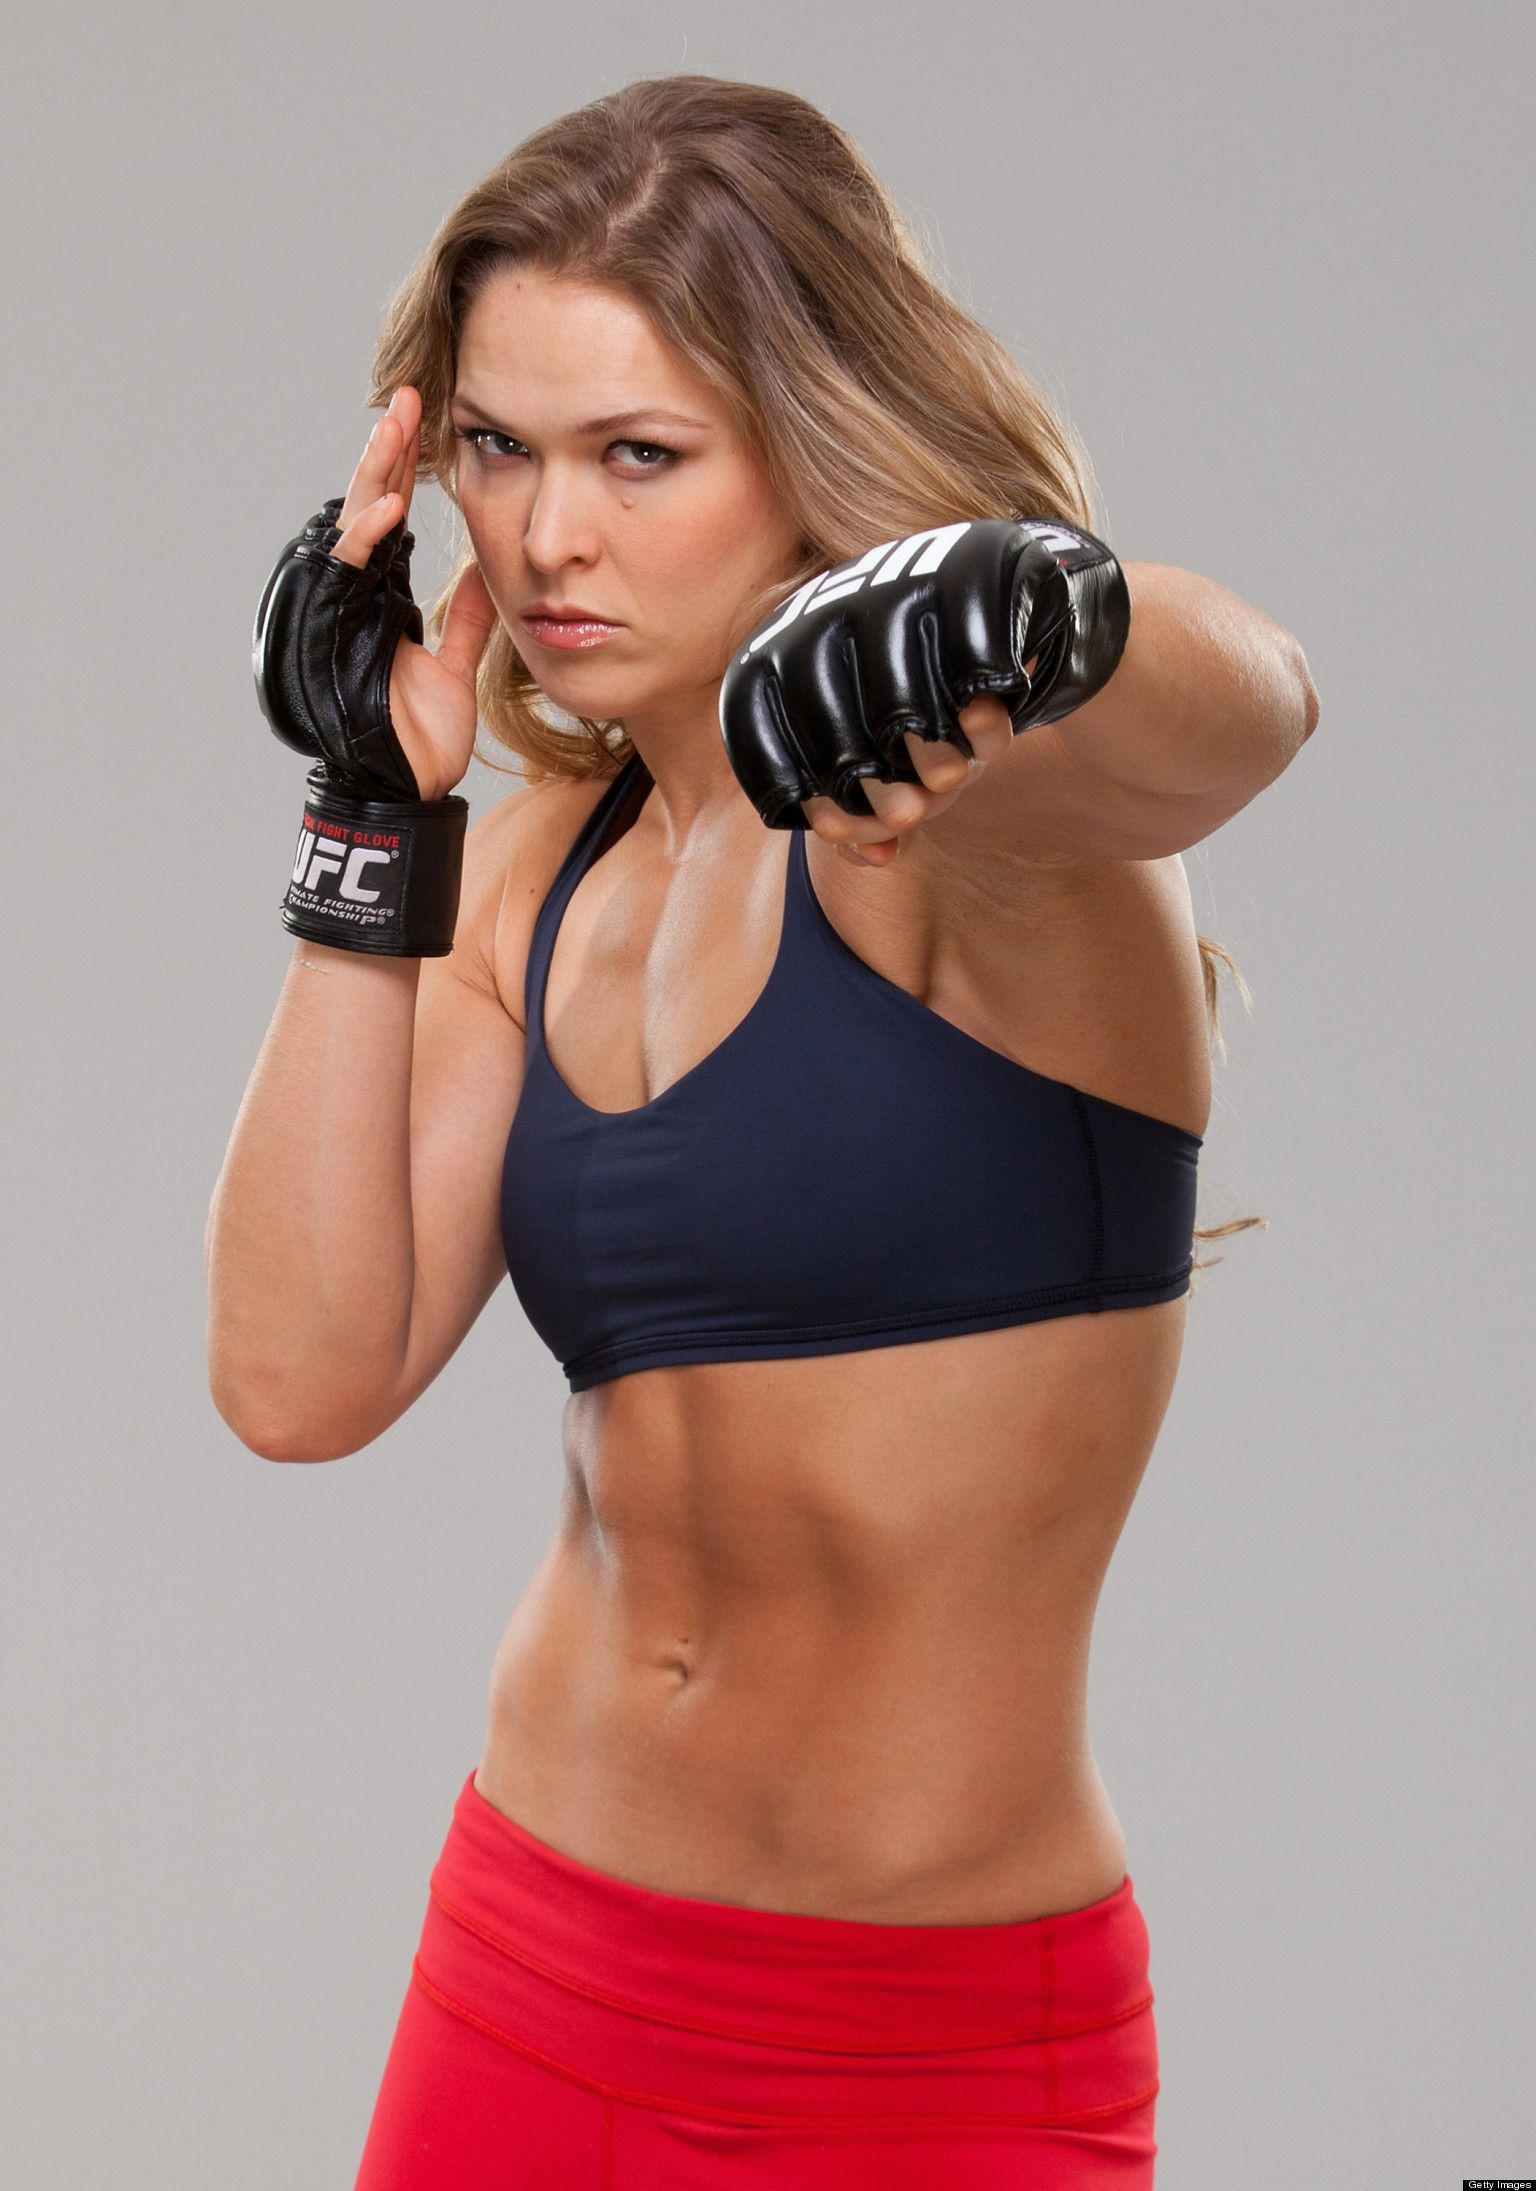 Look Ronda Rousey Strips Down For Maxim Mma Women Female Mma Fighters Ufc Women